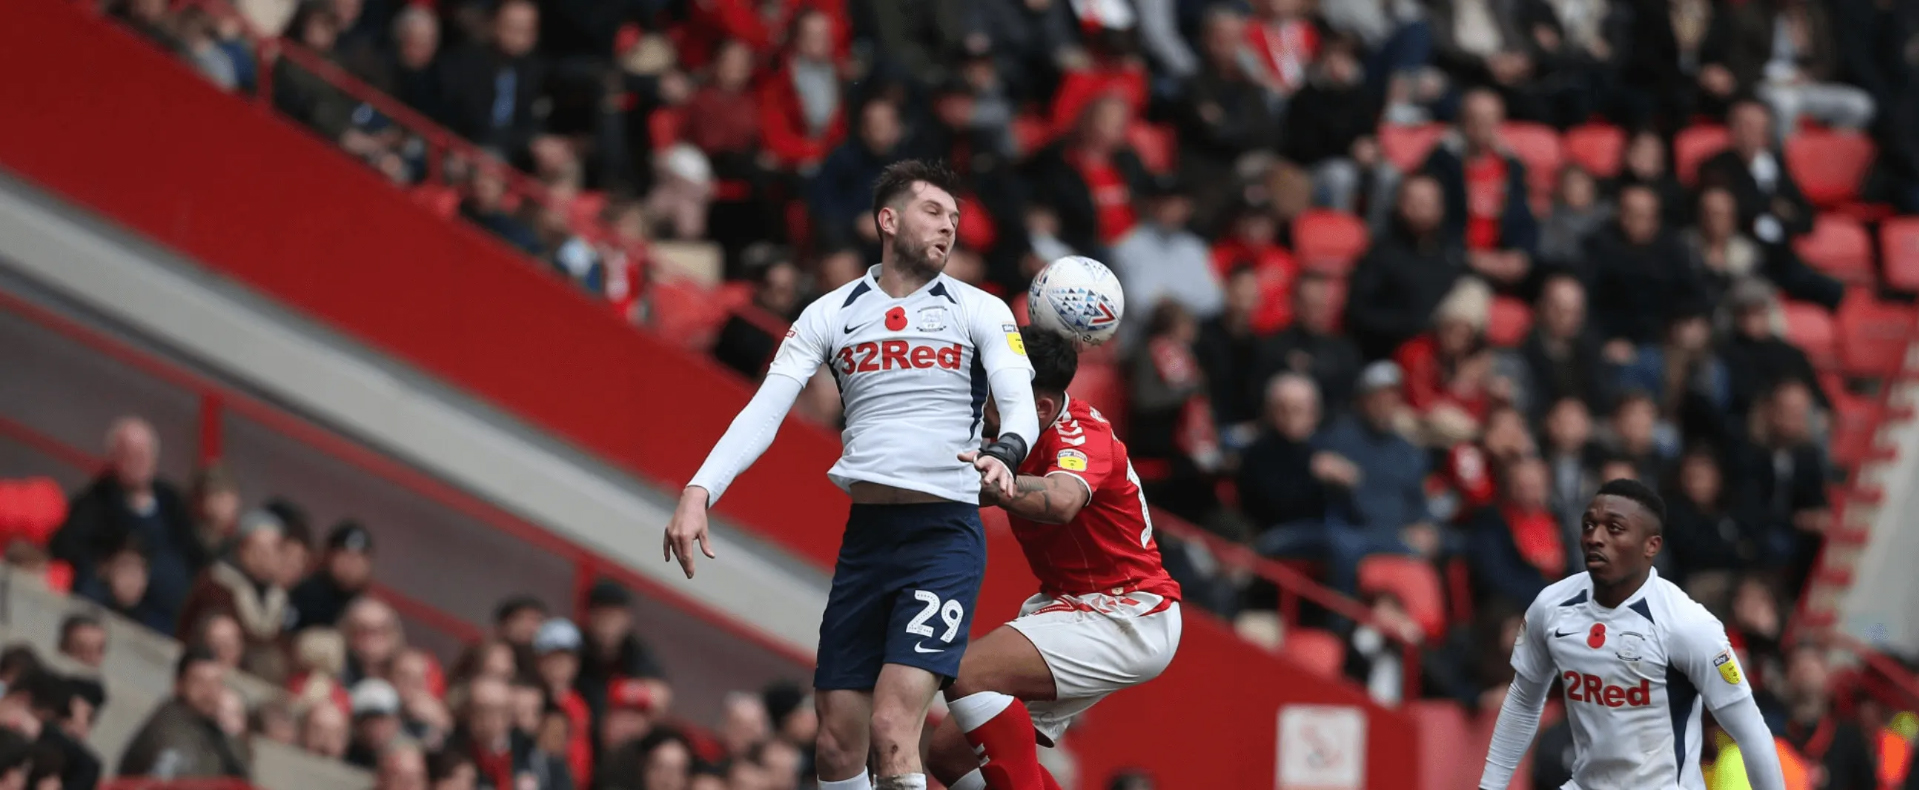 Preston North End vs Charlton